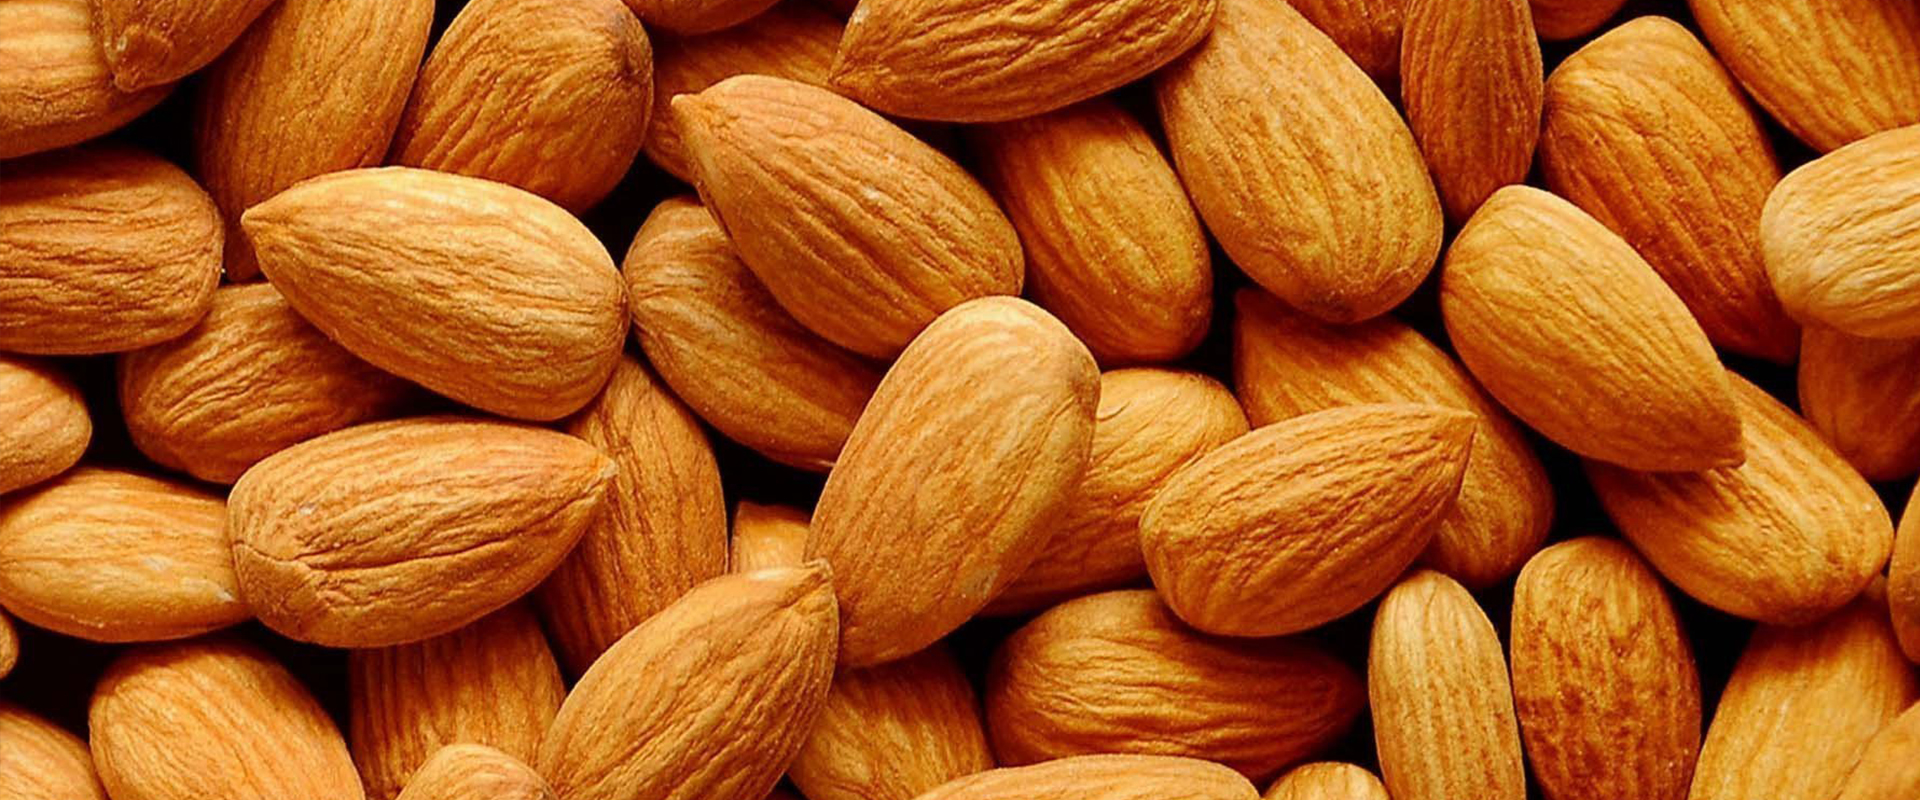 Royal Nuts, Dryfruits & Spices, Online Dry Fruits Gift Offers